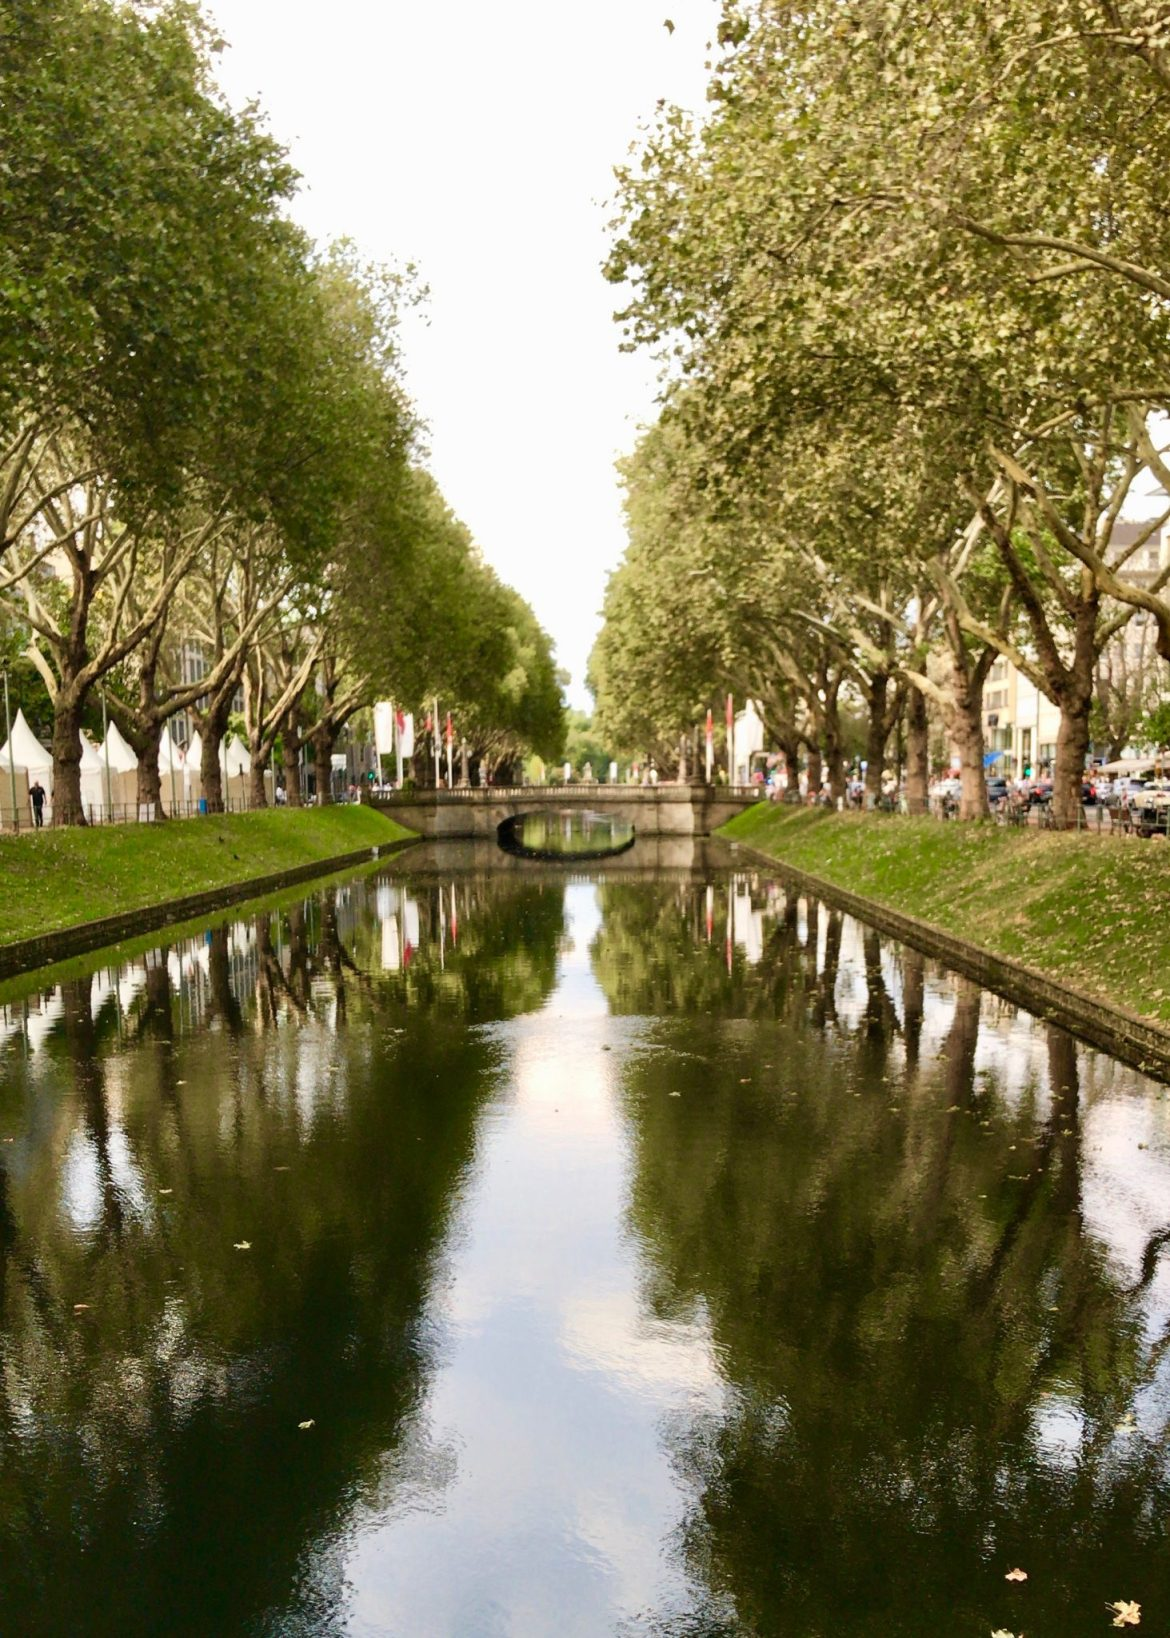 A view of the canal and trees of Düsseldorf's Königsallee